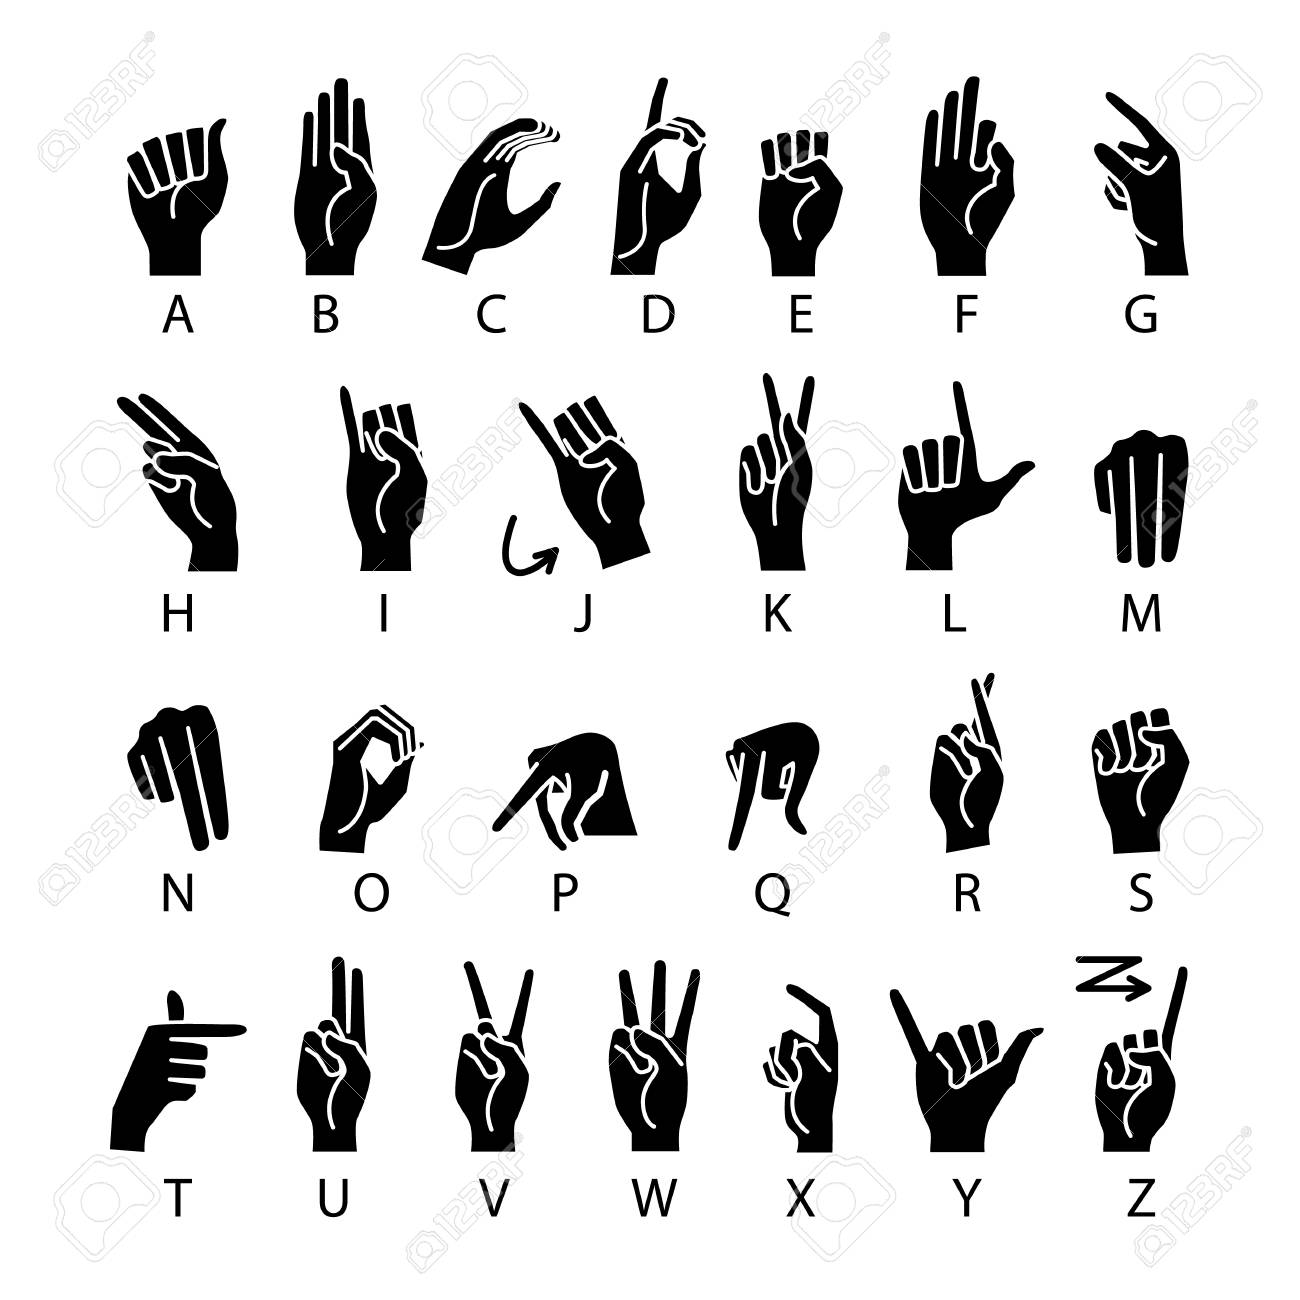 vector language of deaf.